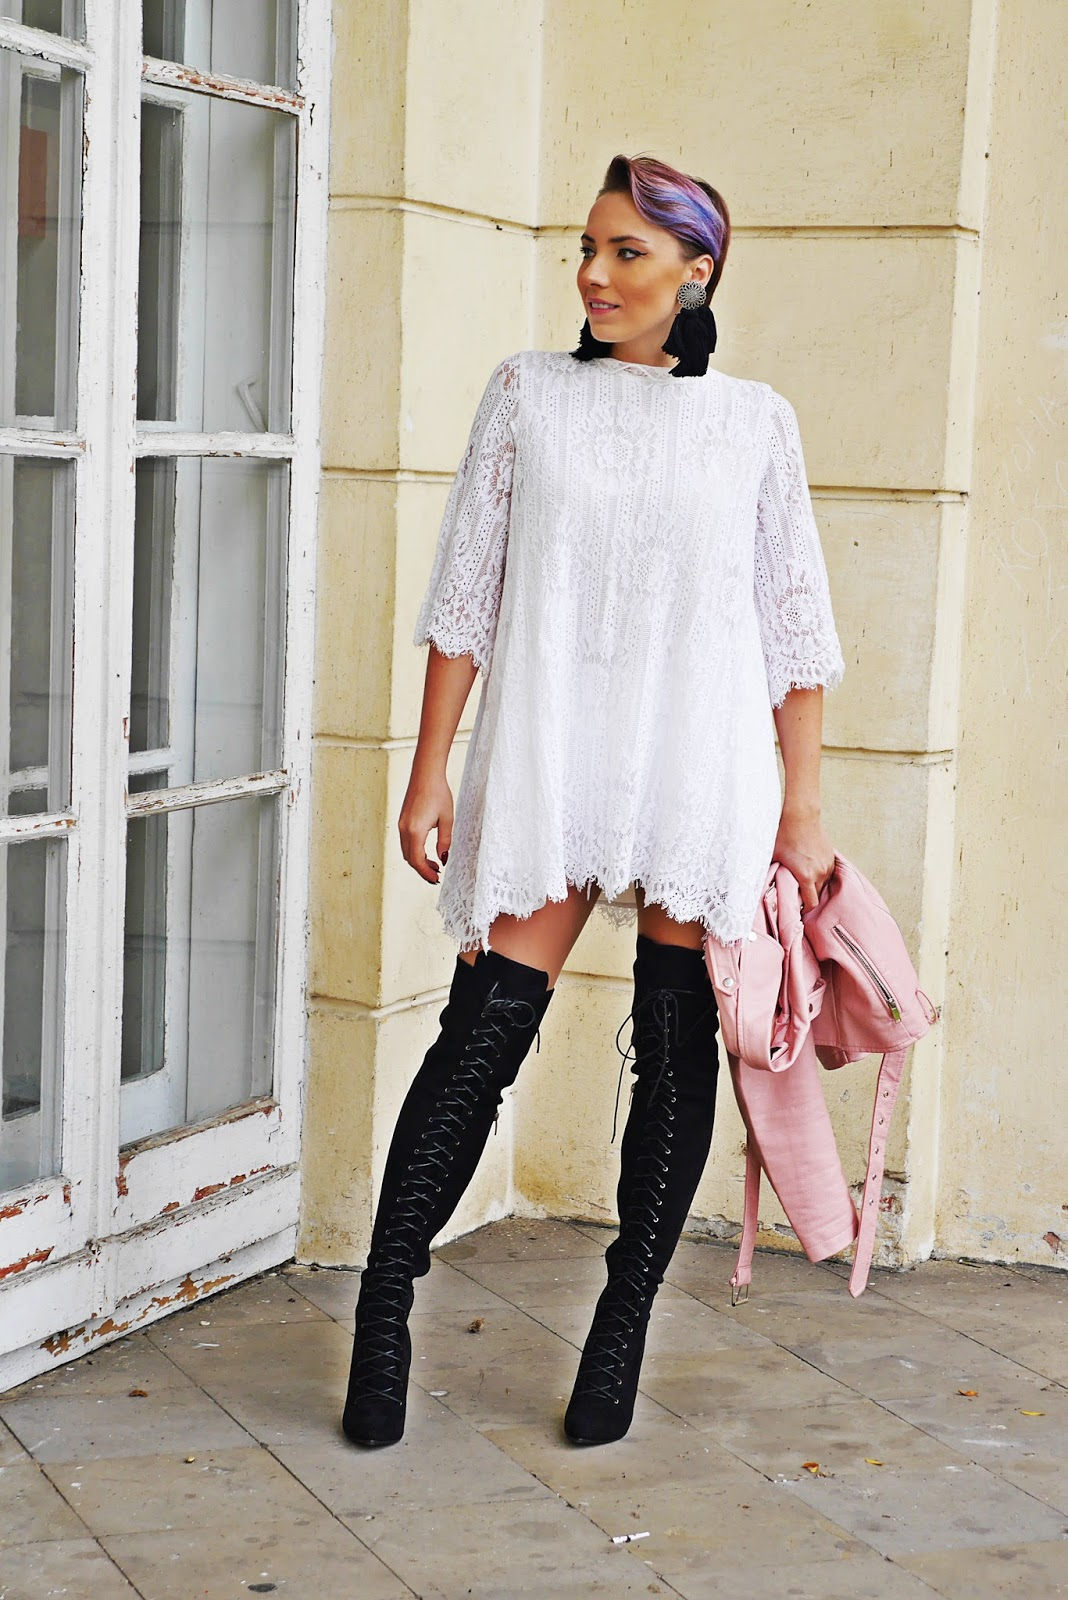 9_lace_dress_white_high_knee_shoes_renee_karyn_blog_modowy_180917a